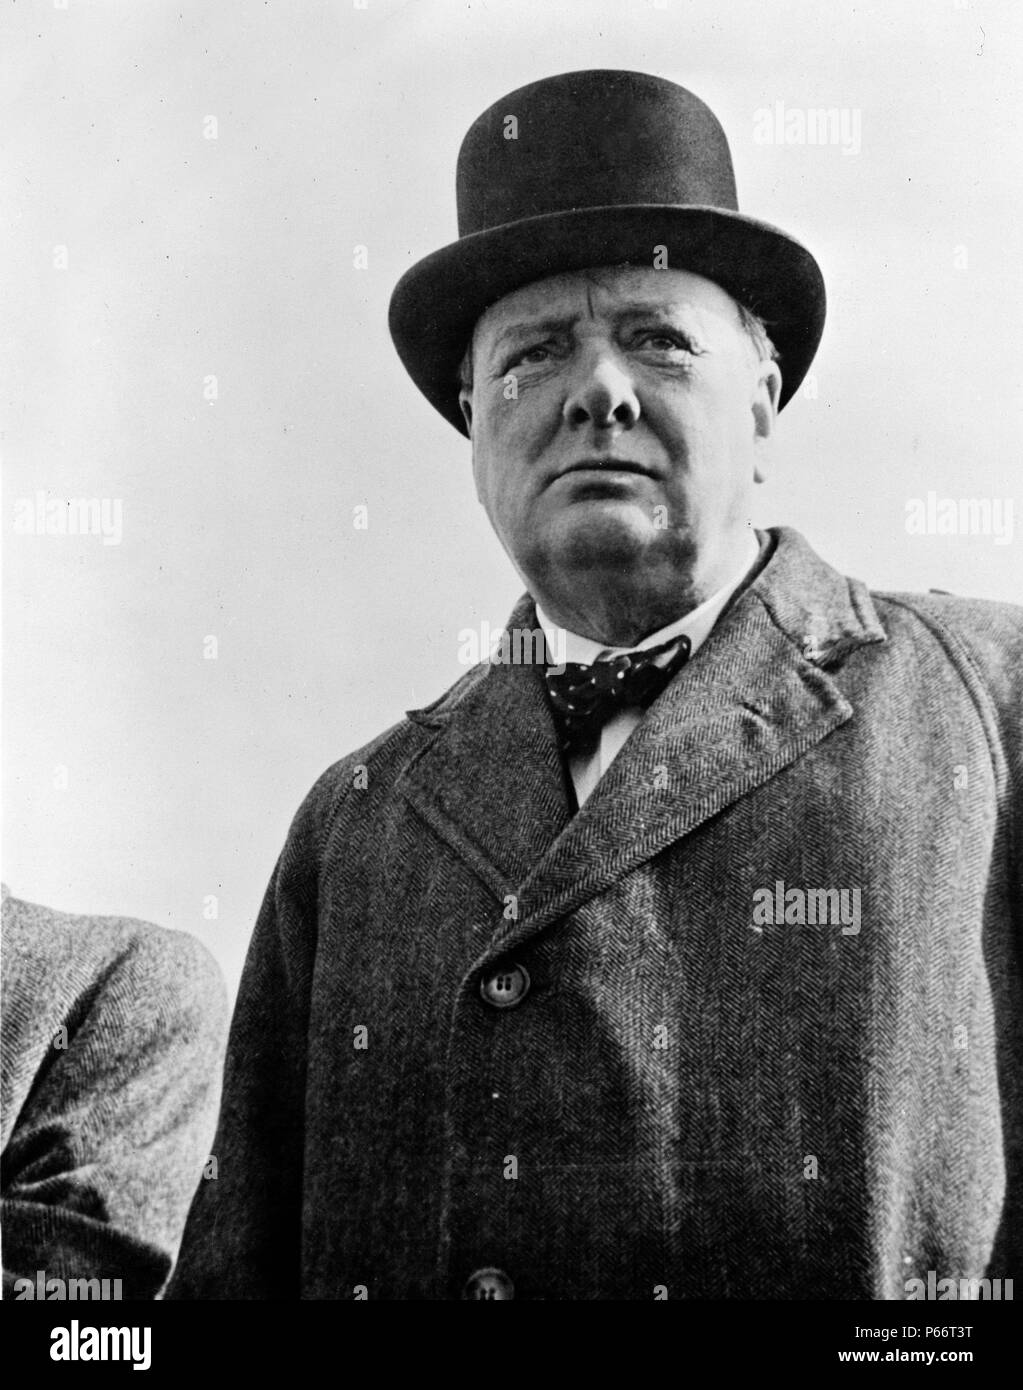 Prime Minister Winston Churchill of Great Britain 1942. Sir Winston Leonard Spencer-Churchill, 1874 - 1965. British politician who was the Prime Minister of the United Kingdom from 1940 to 1945 and again from 1951 to 1955. - Stock Image